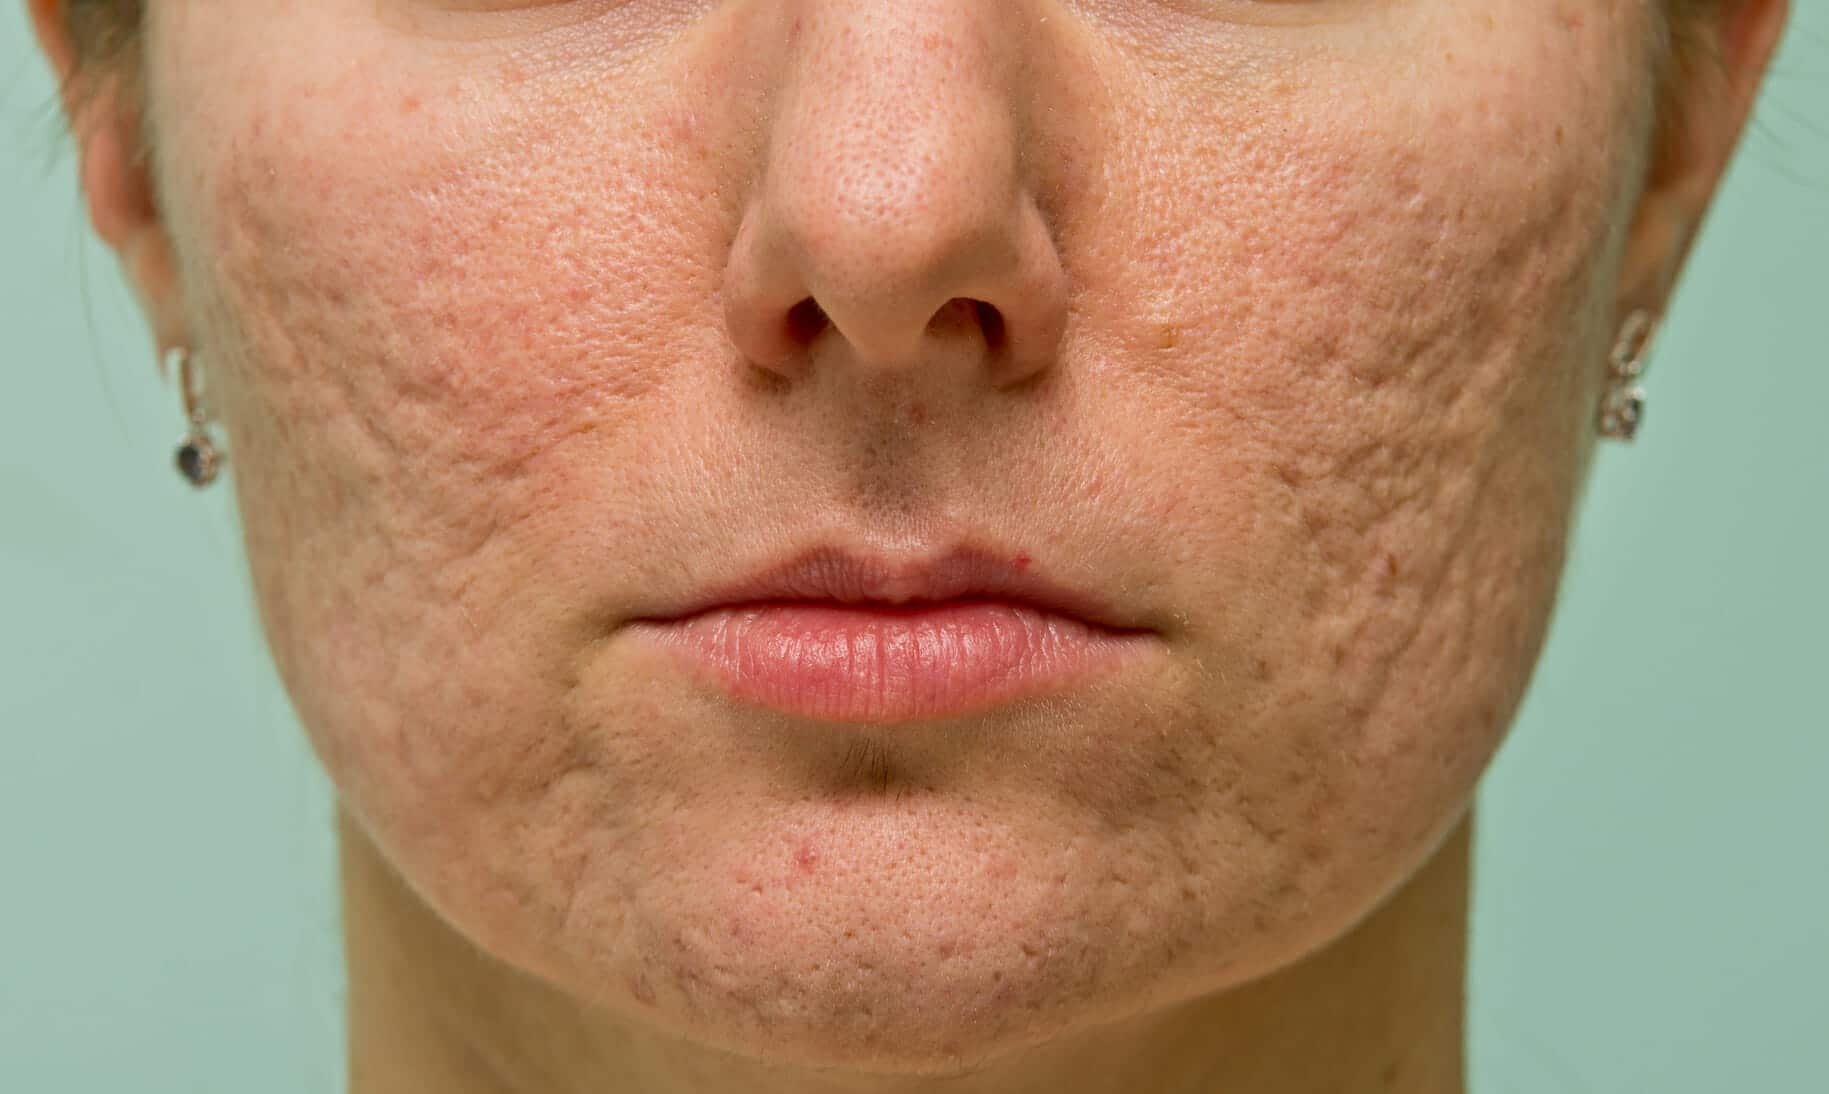 Acne scar dating site